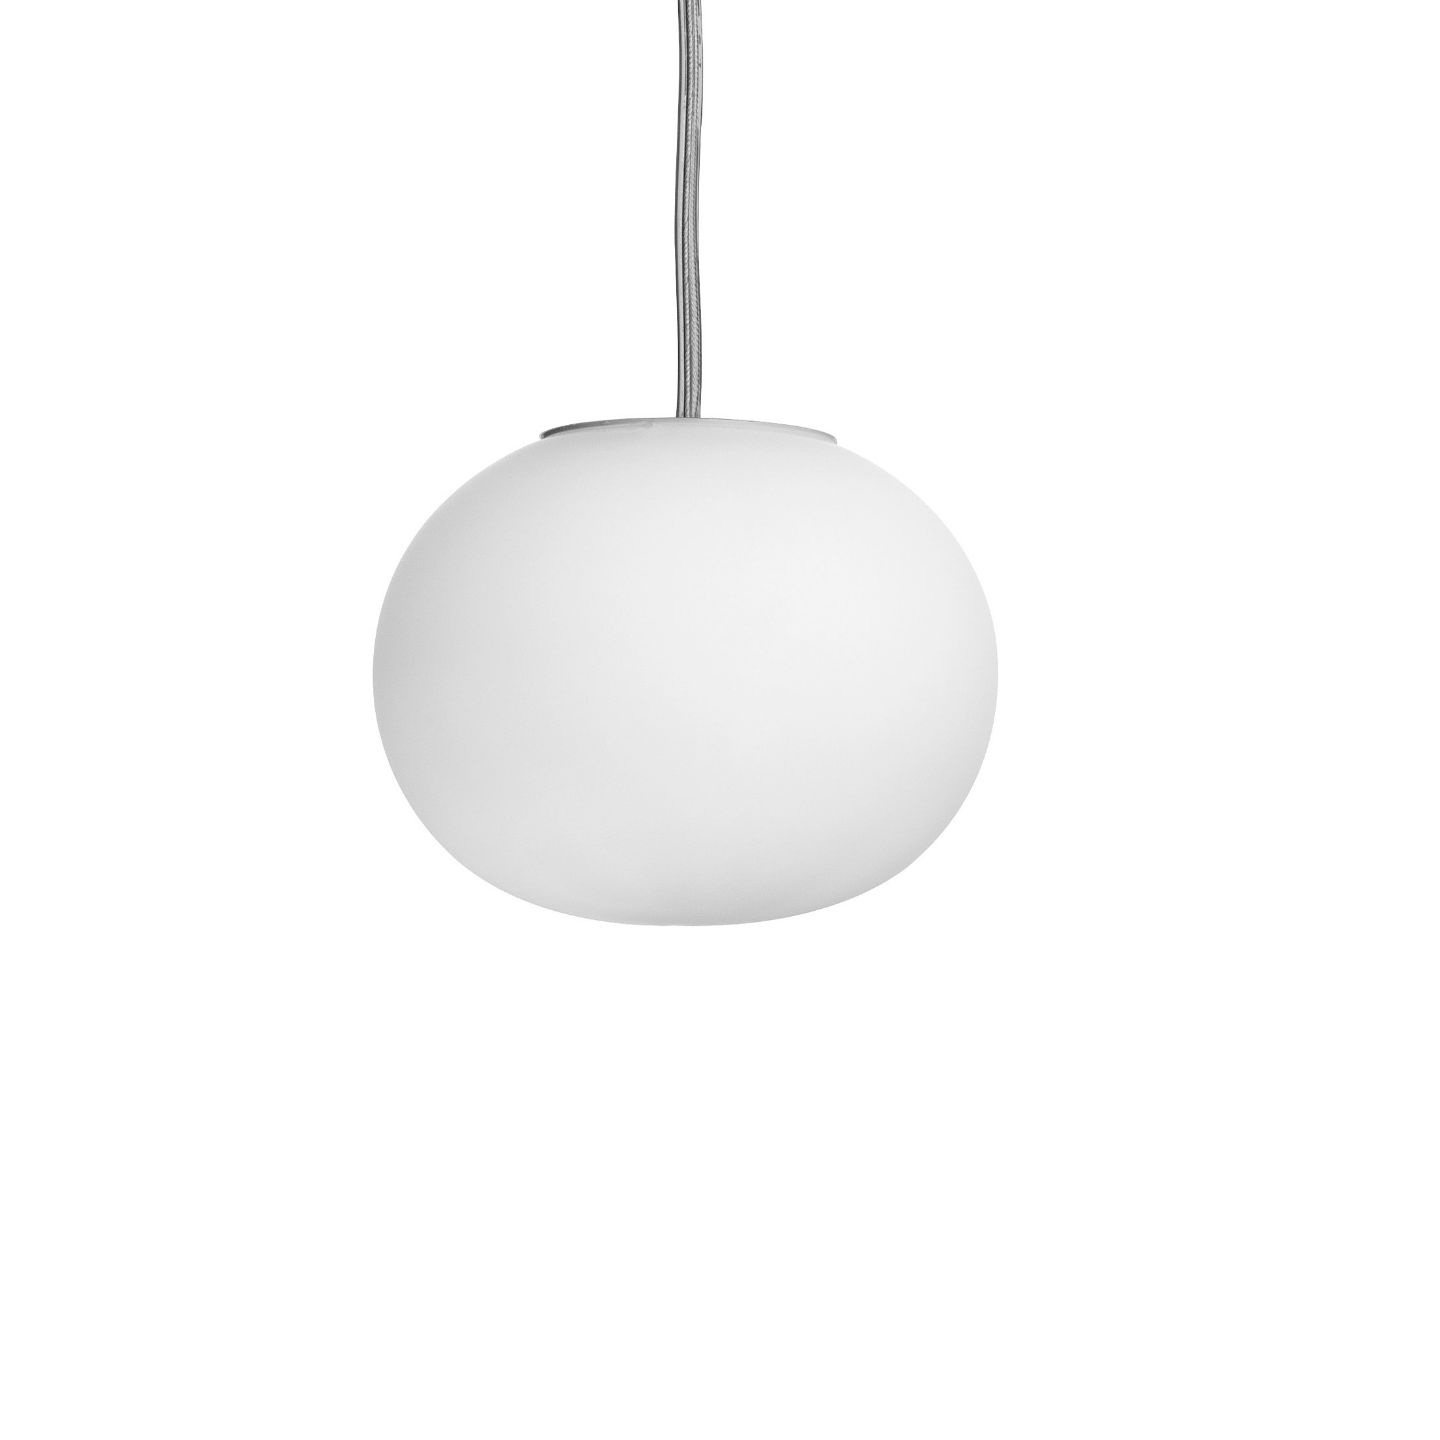 Glo Ball Mini S Pendant Lamp 11,2cm G9 20W - white opal